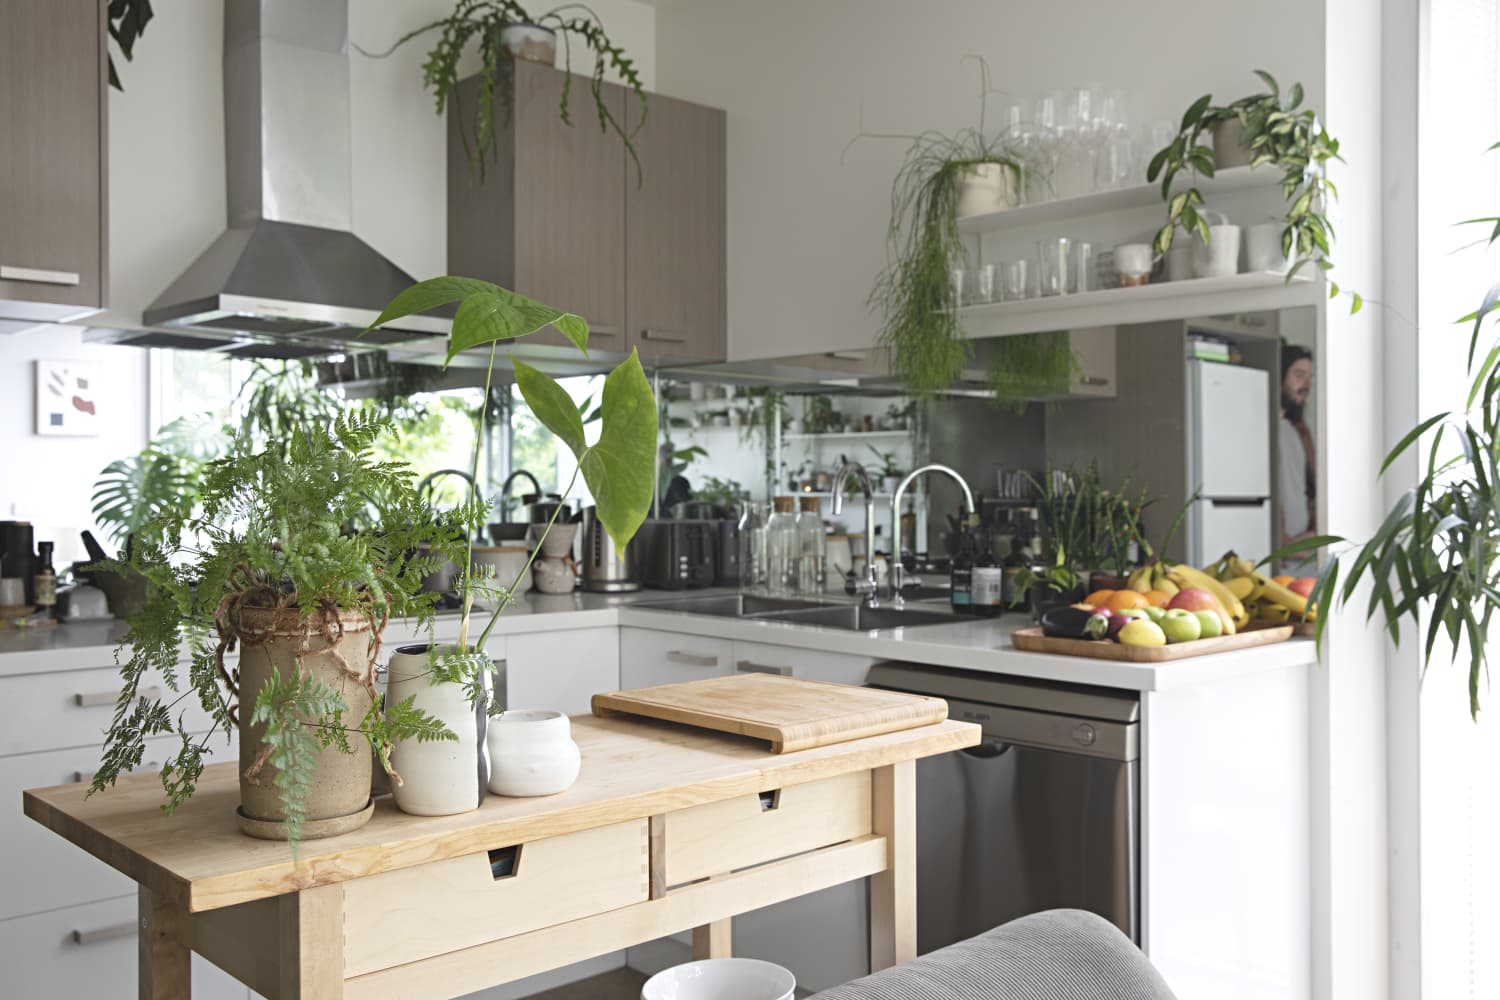 The Best Plants To Have In Your Kitchen, According to a Chef